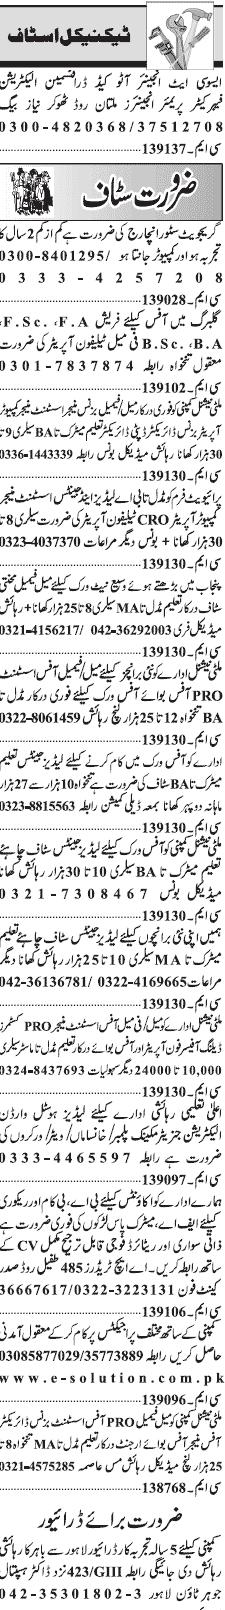 Telephone Operator, Business Manager Job Opportunity